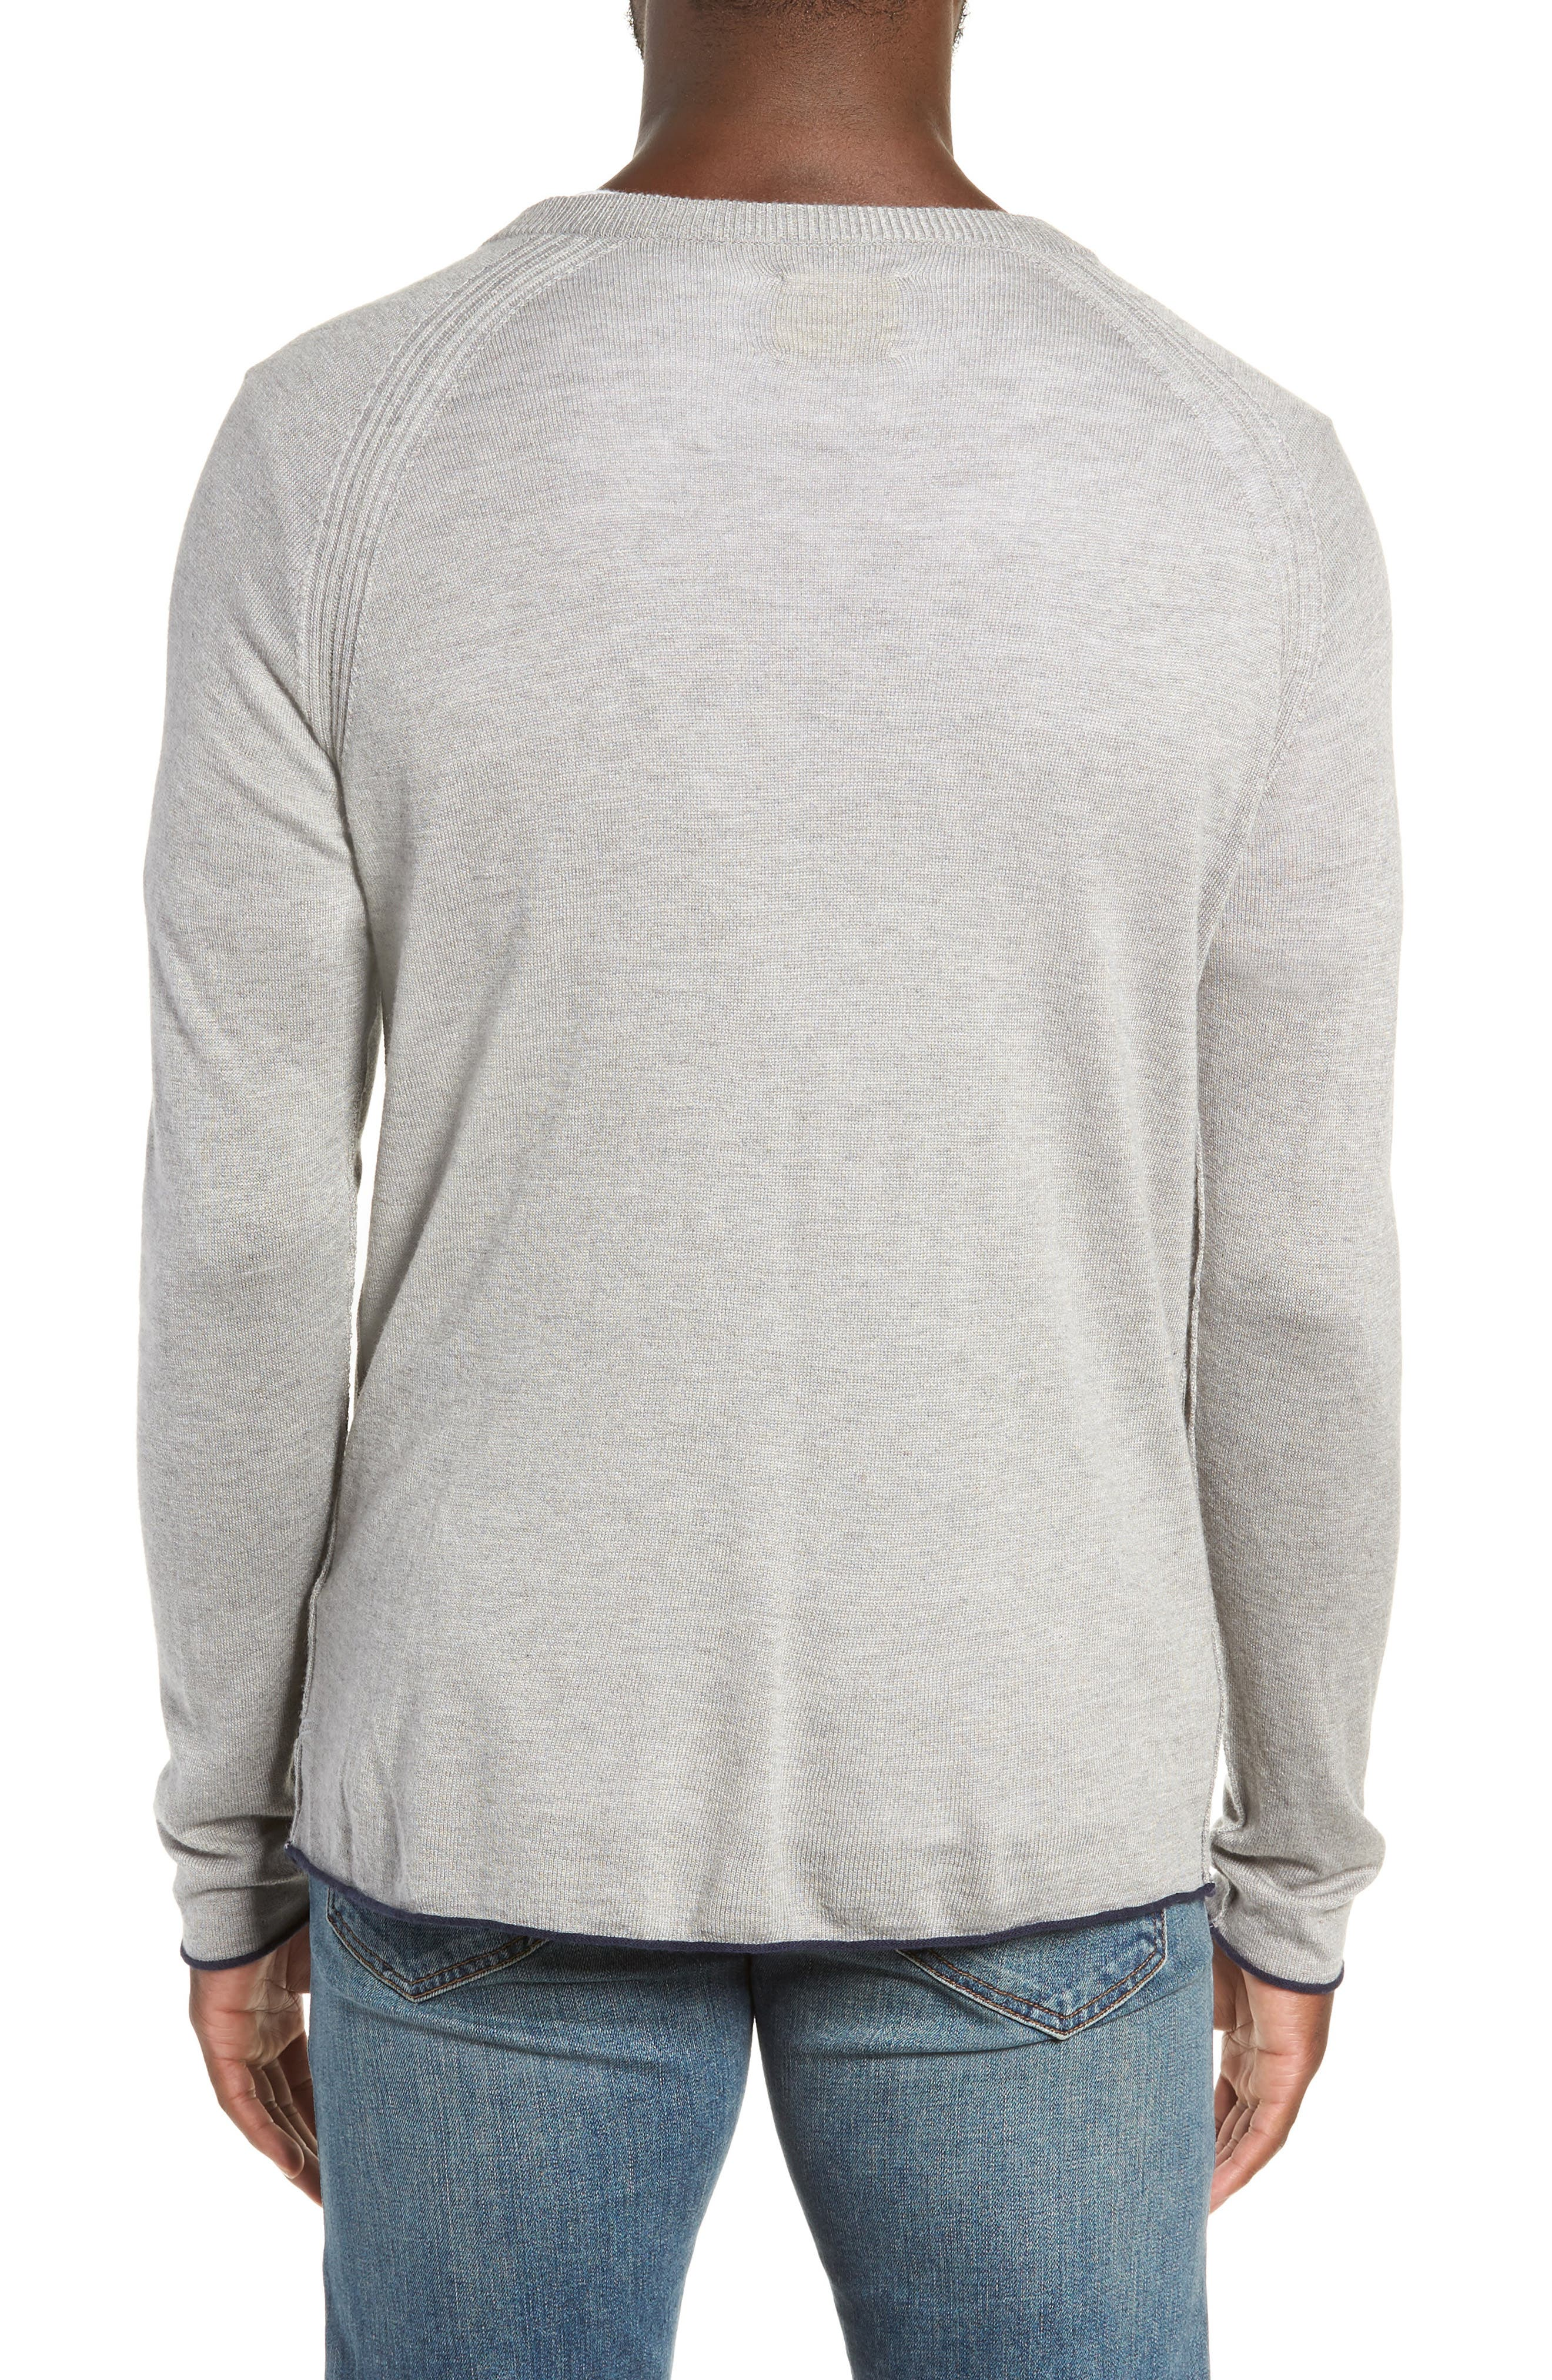 Salinas Cash V-Neck Sweater,                             Alternate thumbnail 2, color,                             GREY HEATHER